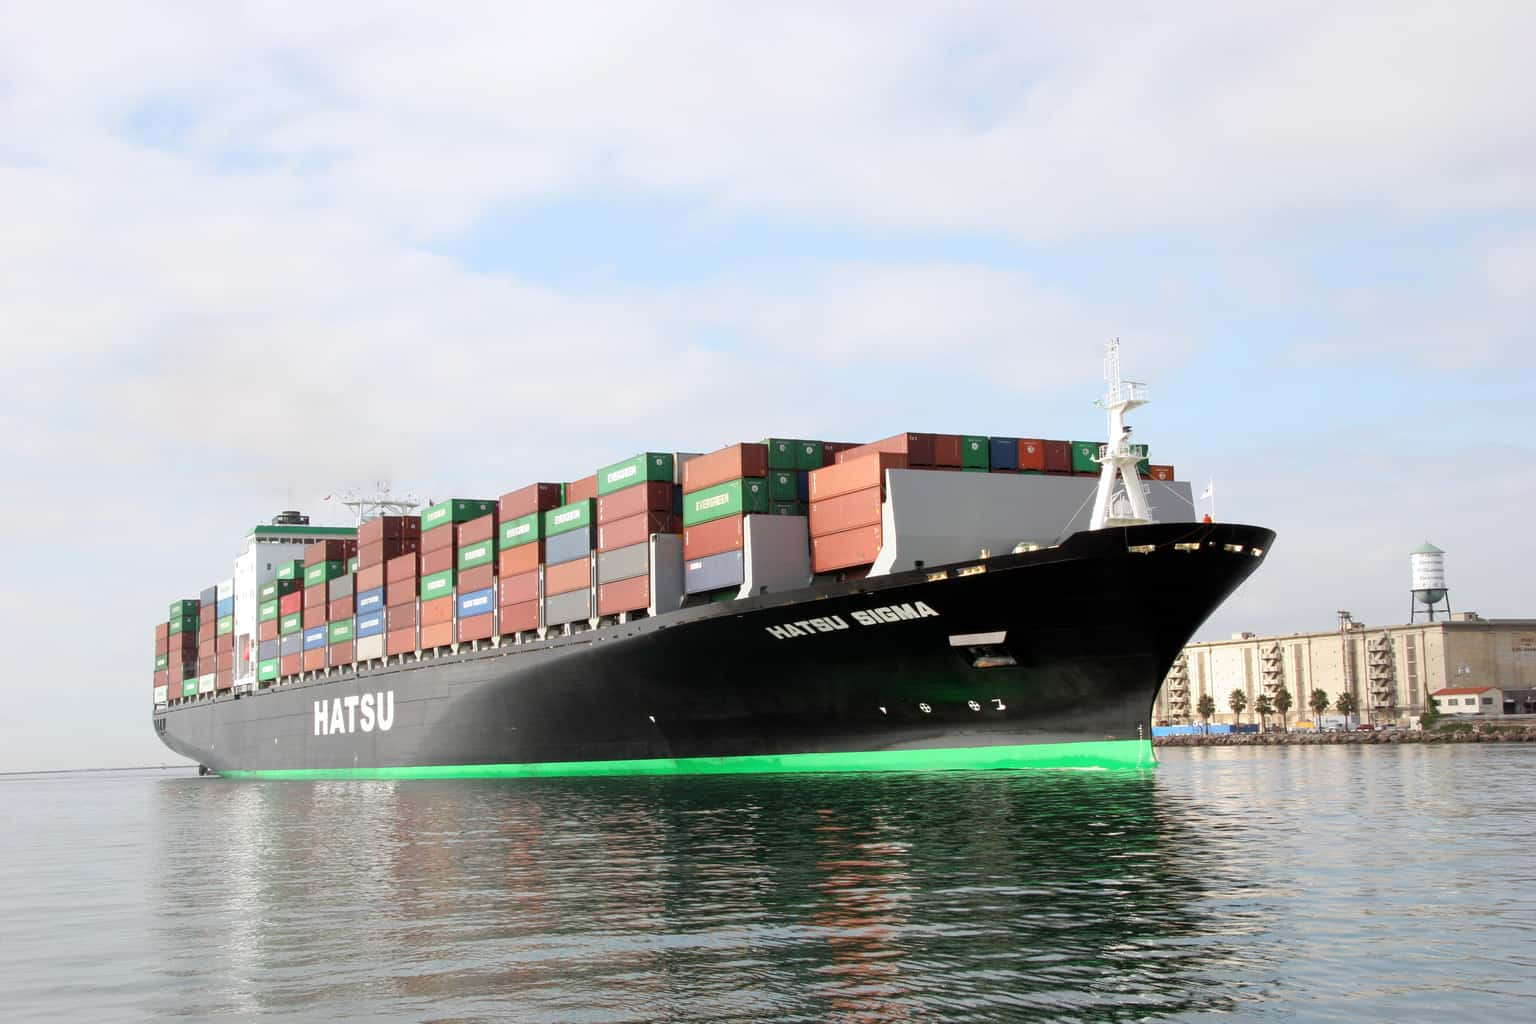 Take a free boat tour of the Port of Los Angeles on May 19! The Port of Los Angeles is a premier international Port, the #1 container port in the nation, a leader in environmental initiatives and home to diverse recreational and educational facilities.